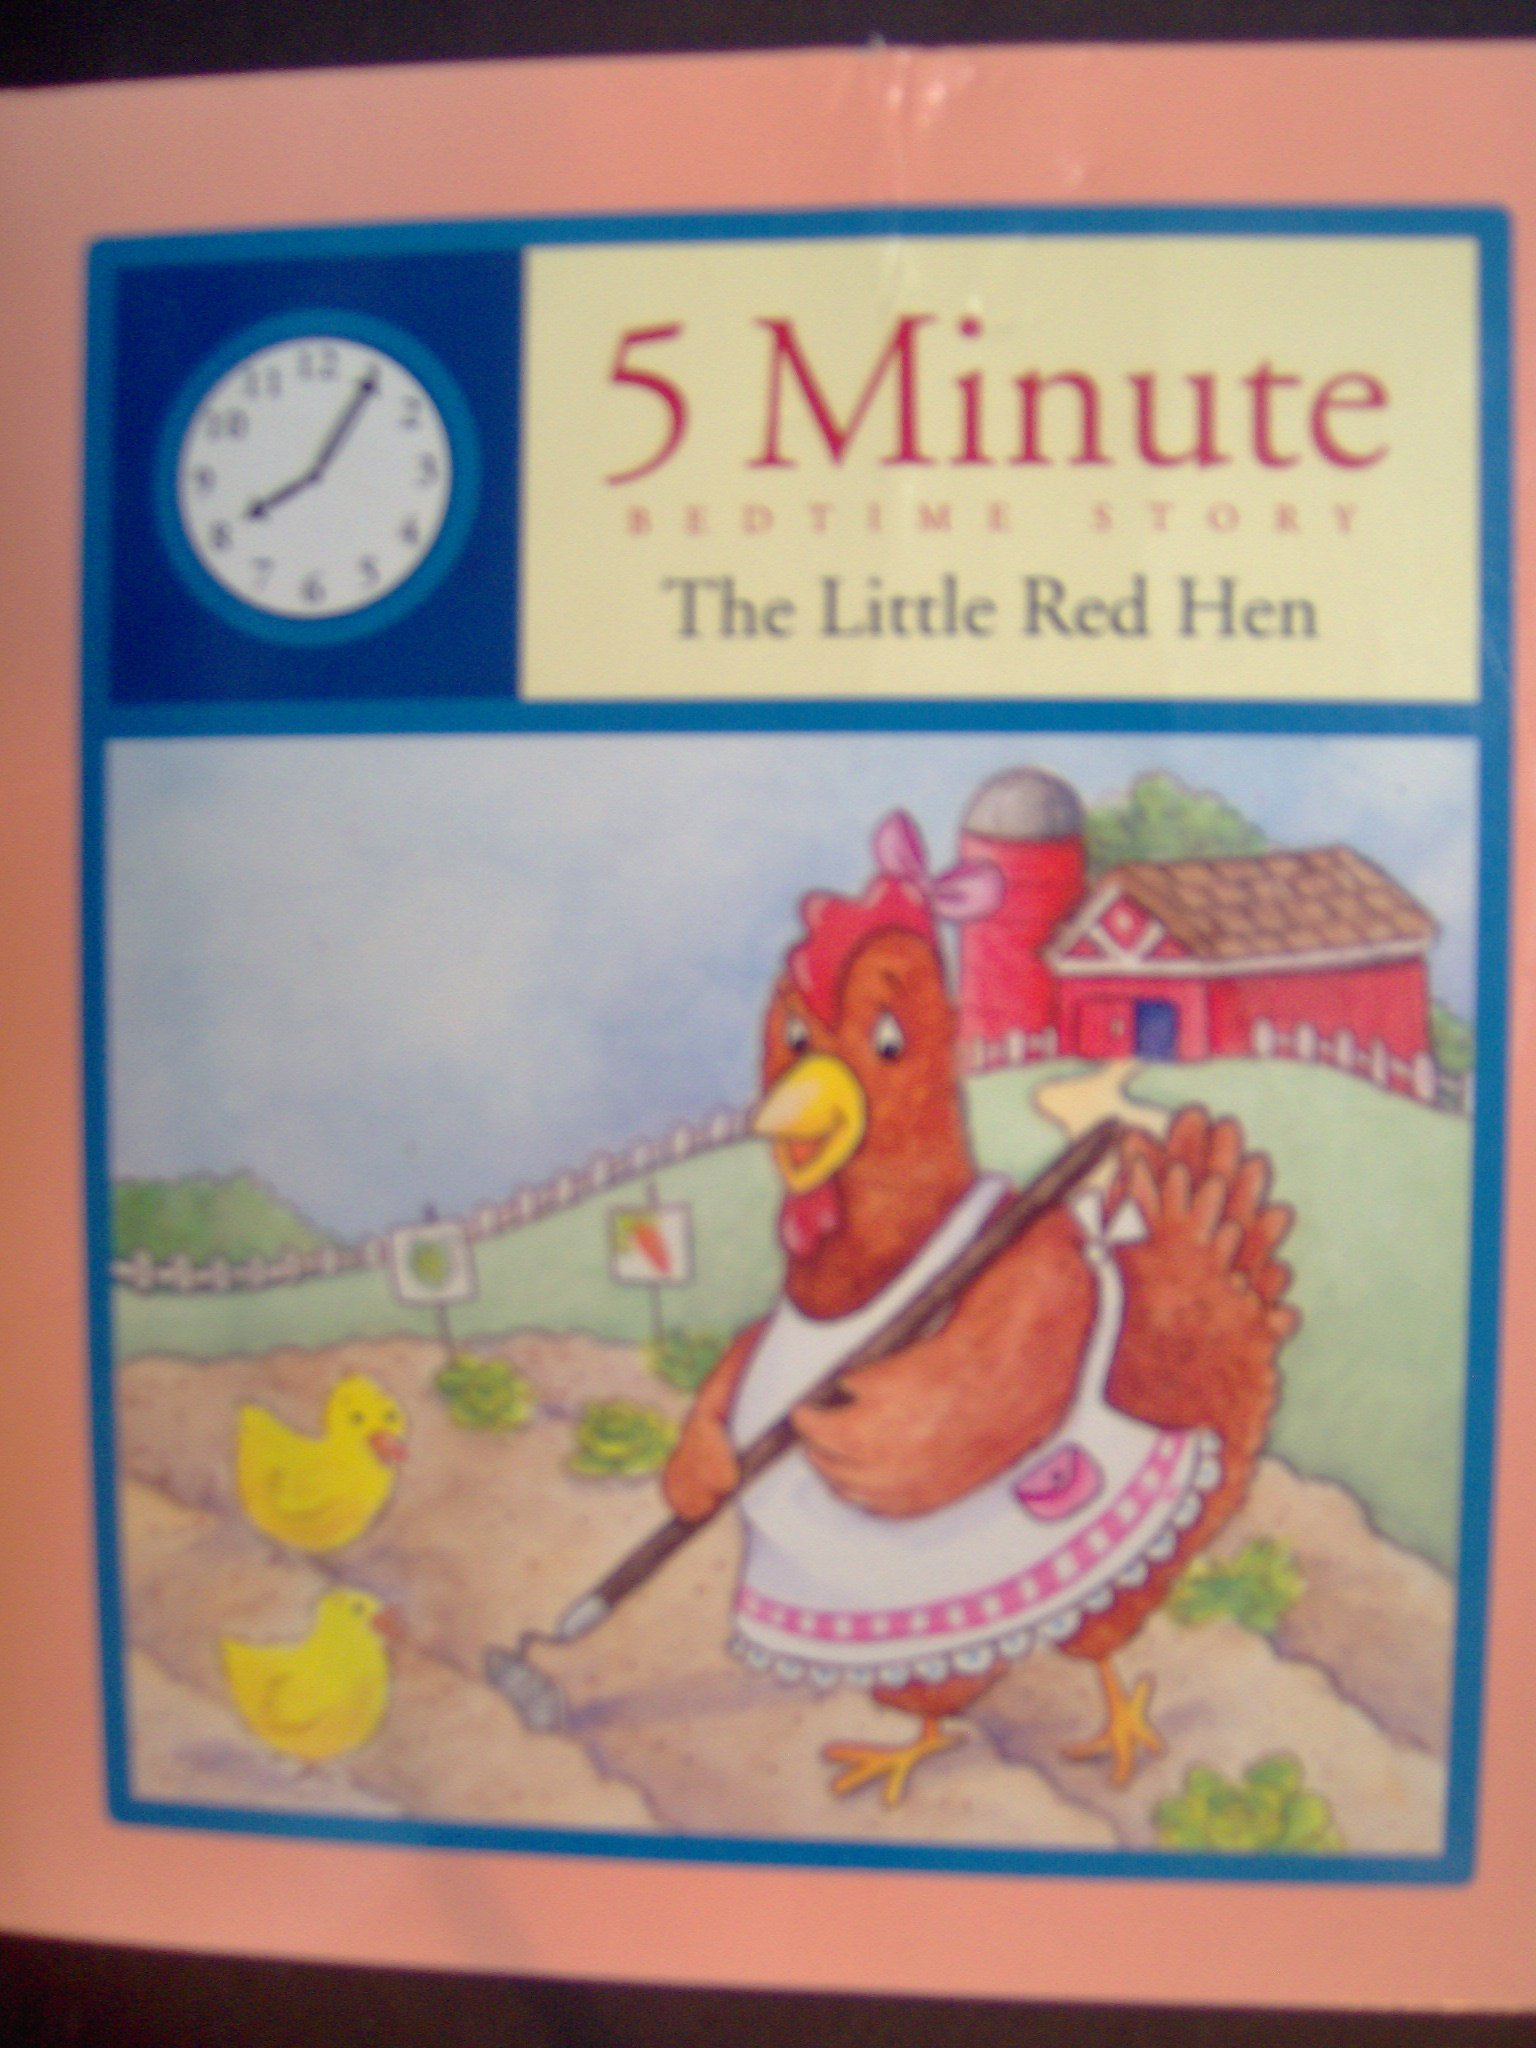 The Little Red Hen (5 Minute Bedtime Story) pdf